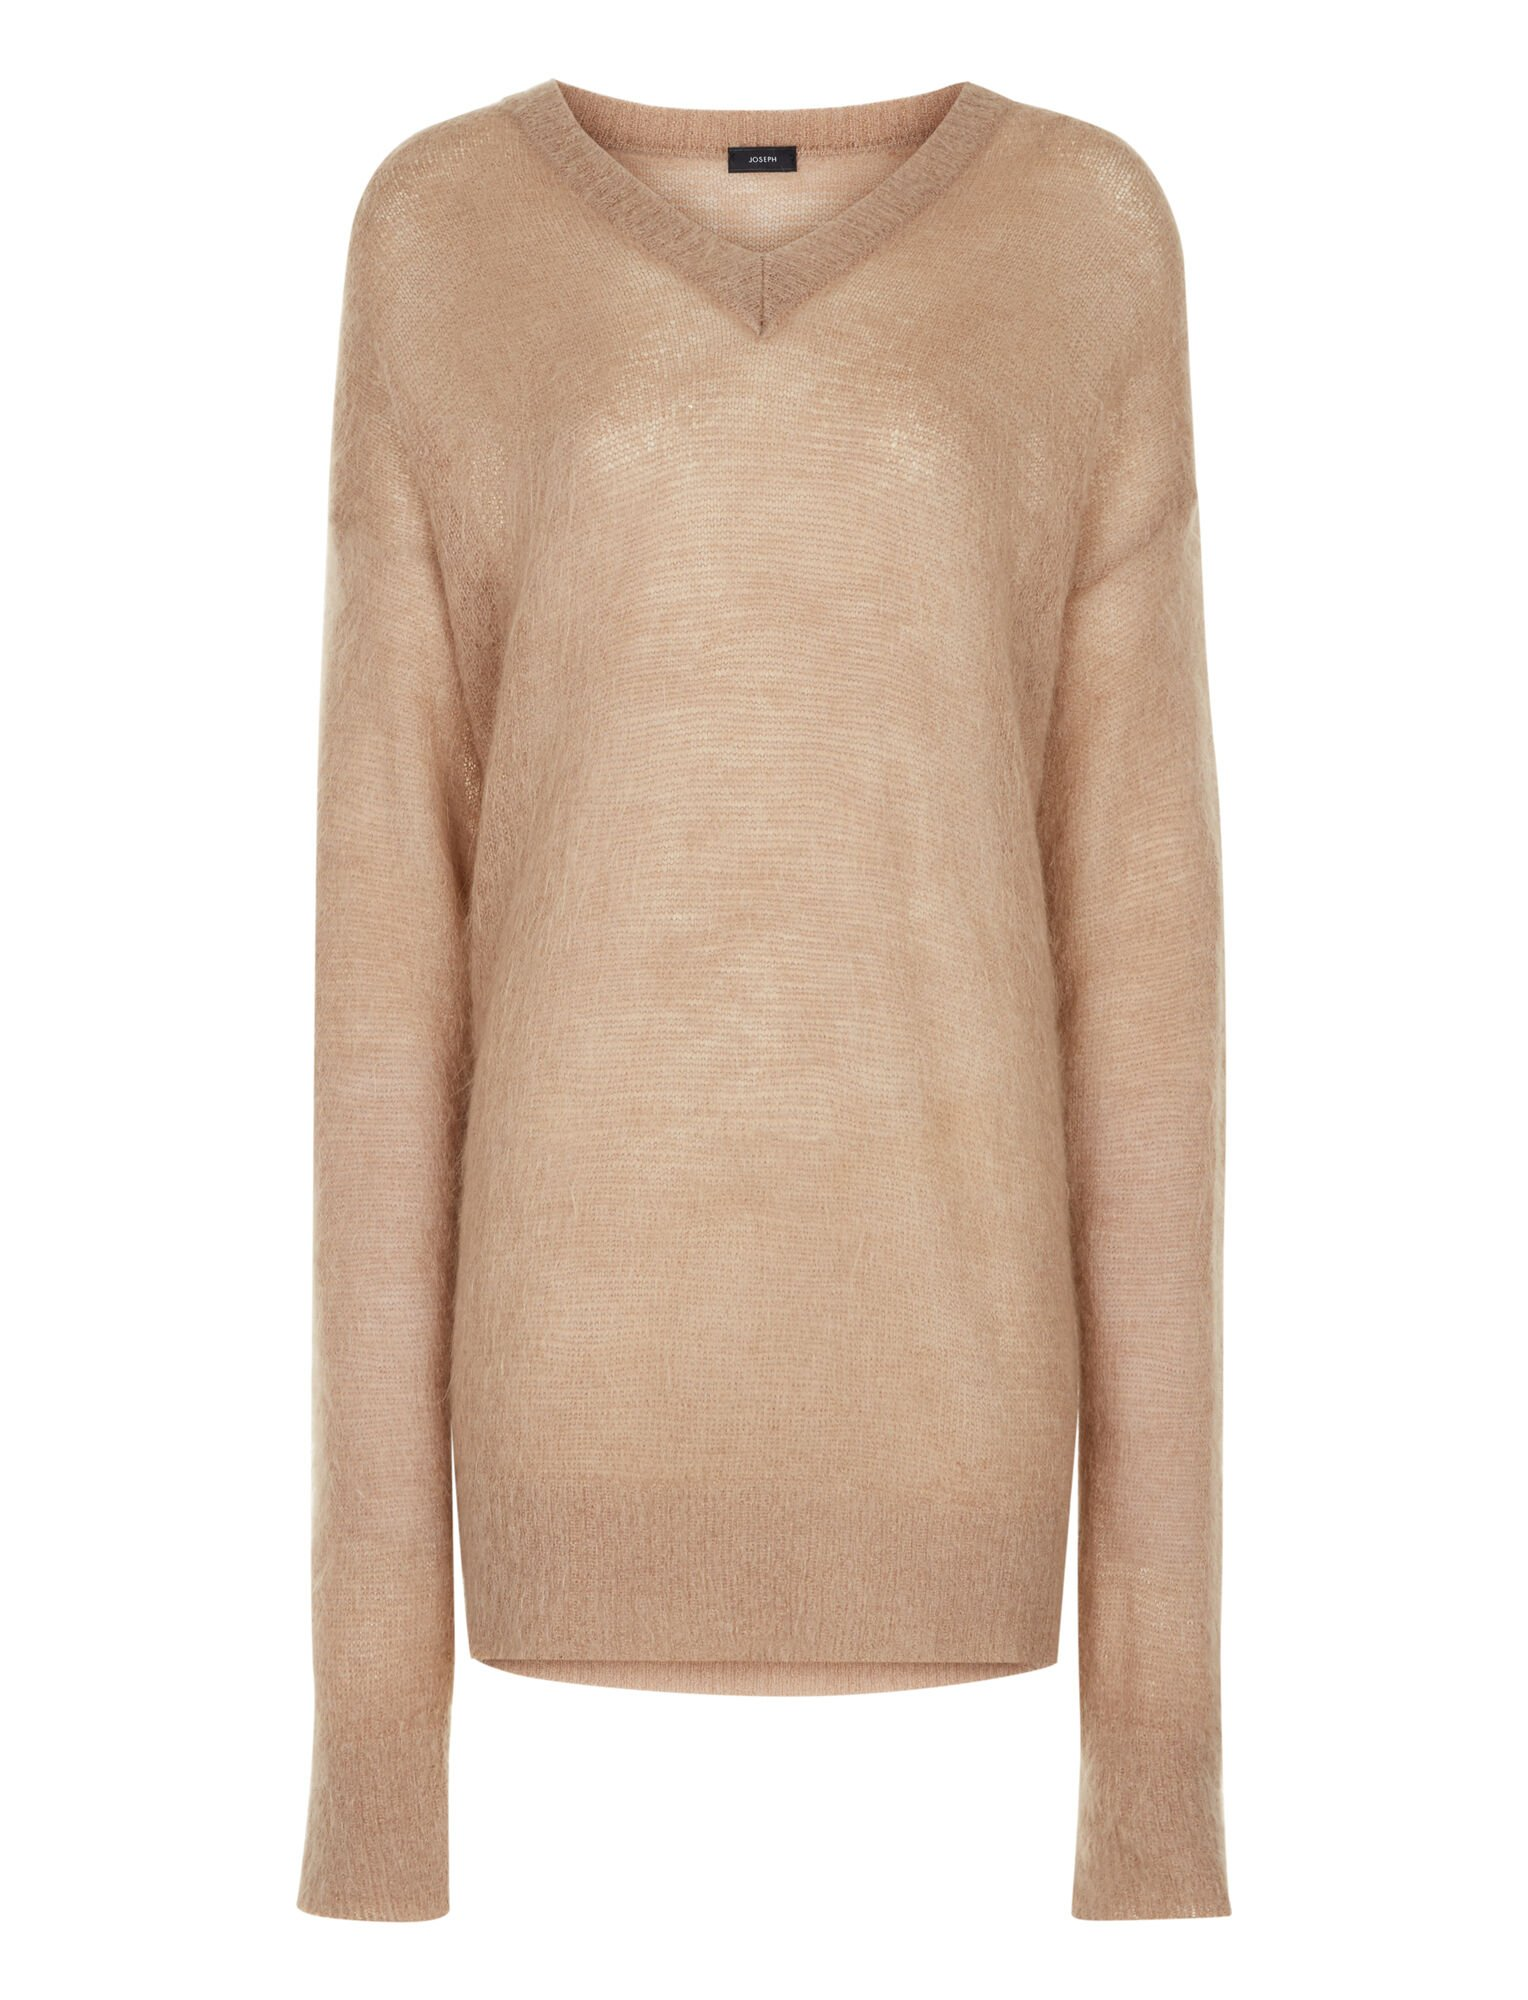 Joseph, V Neck Oversize Brushed Mohair Knit, in CAMEL